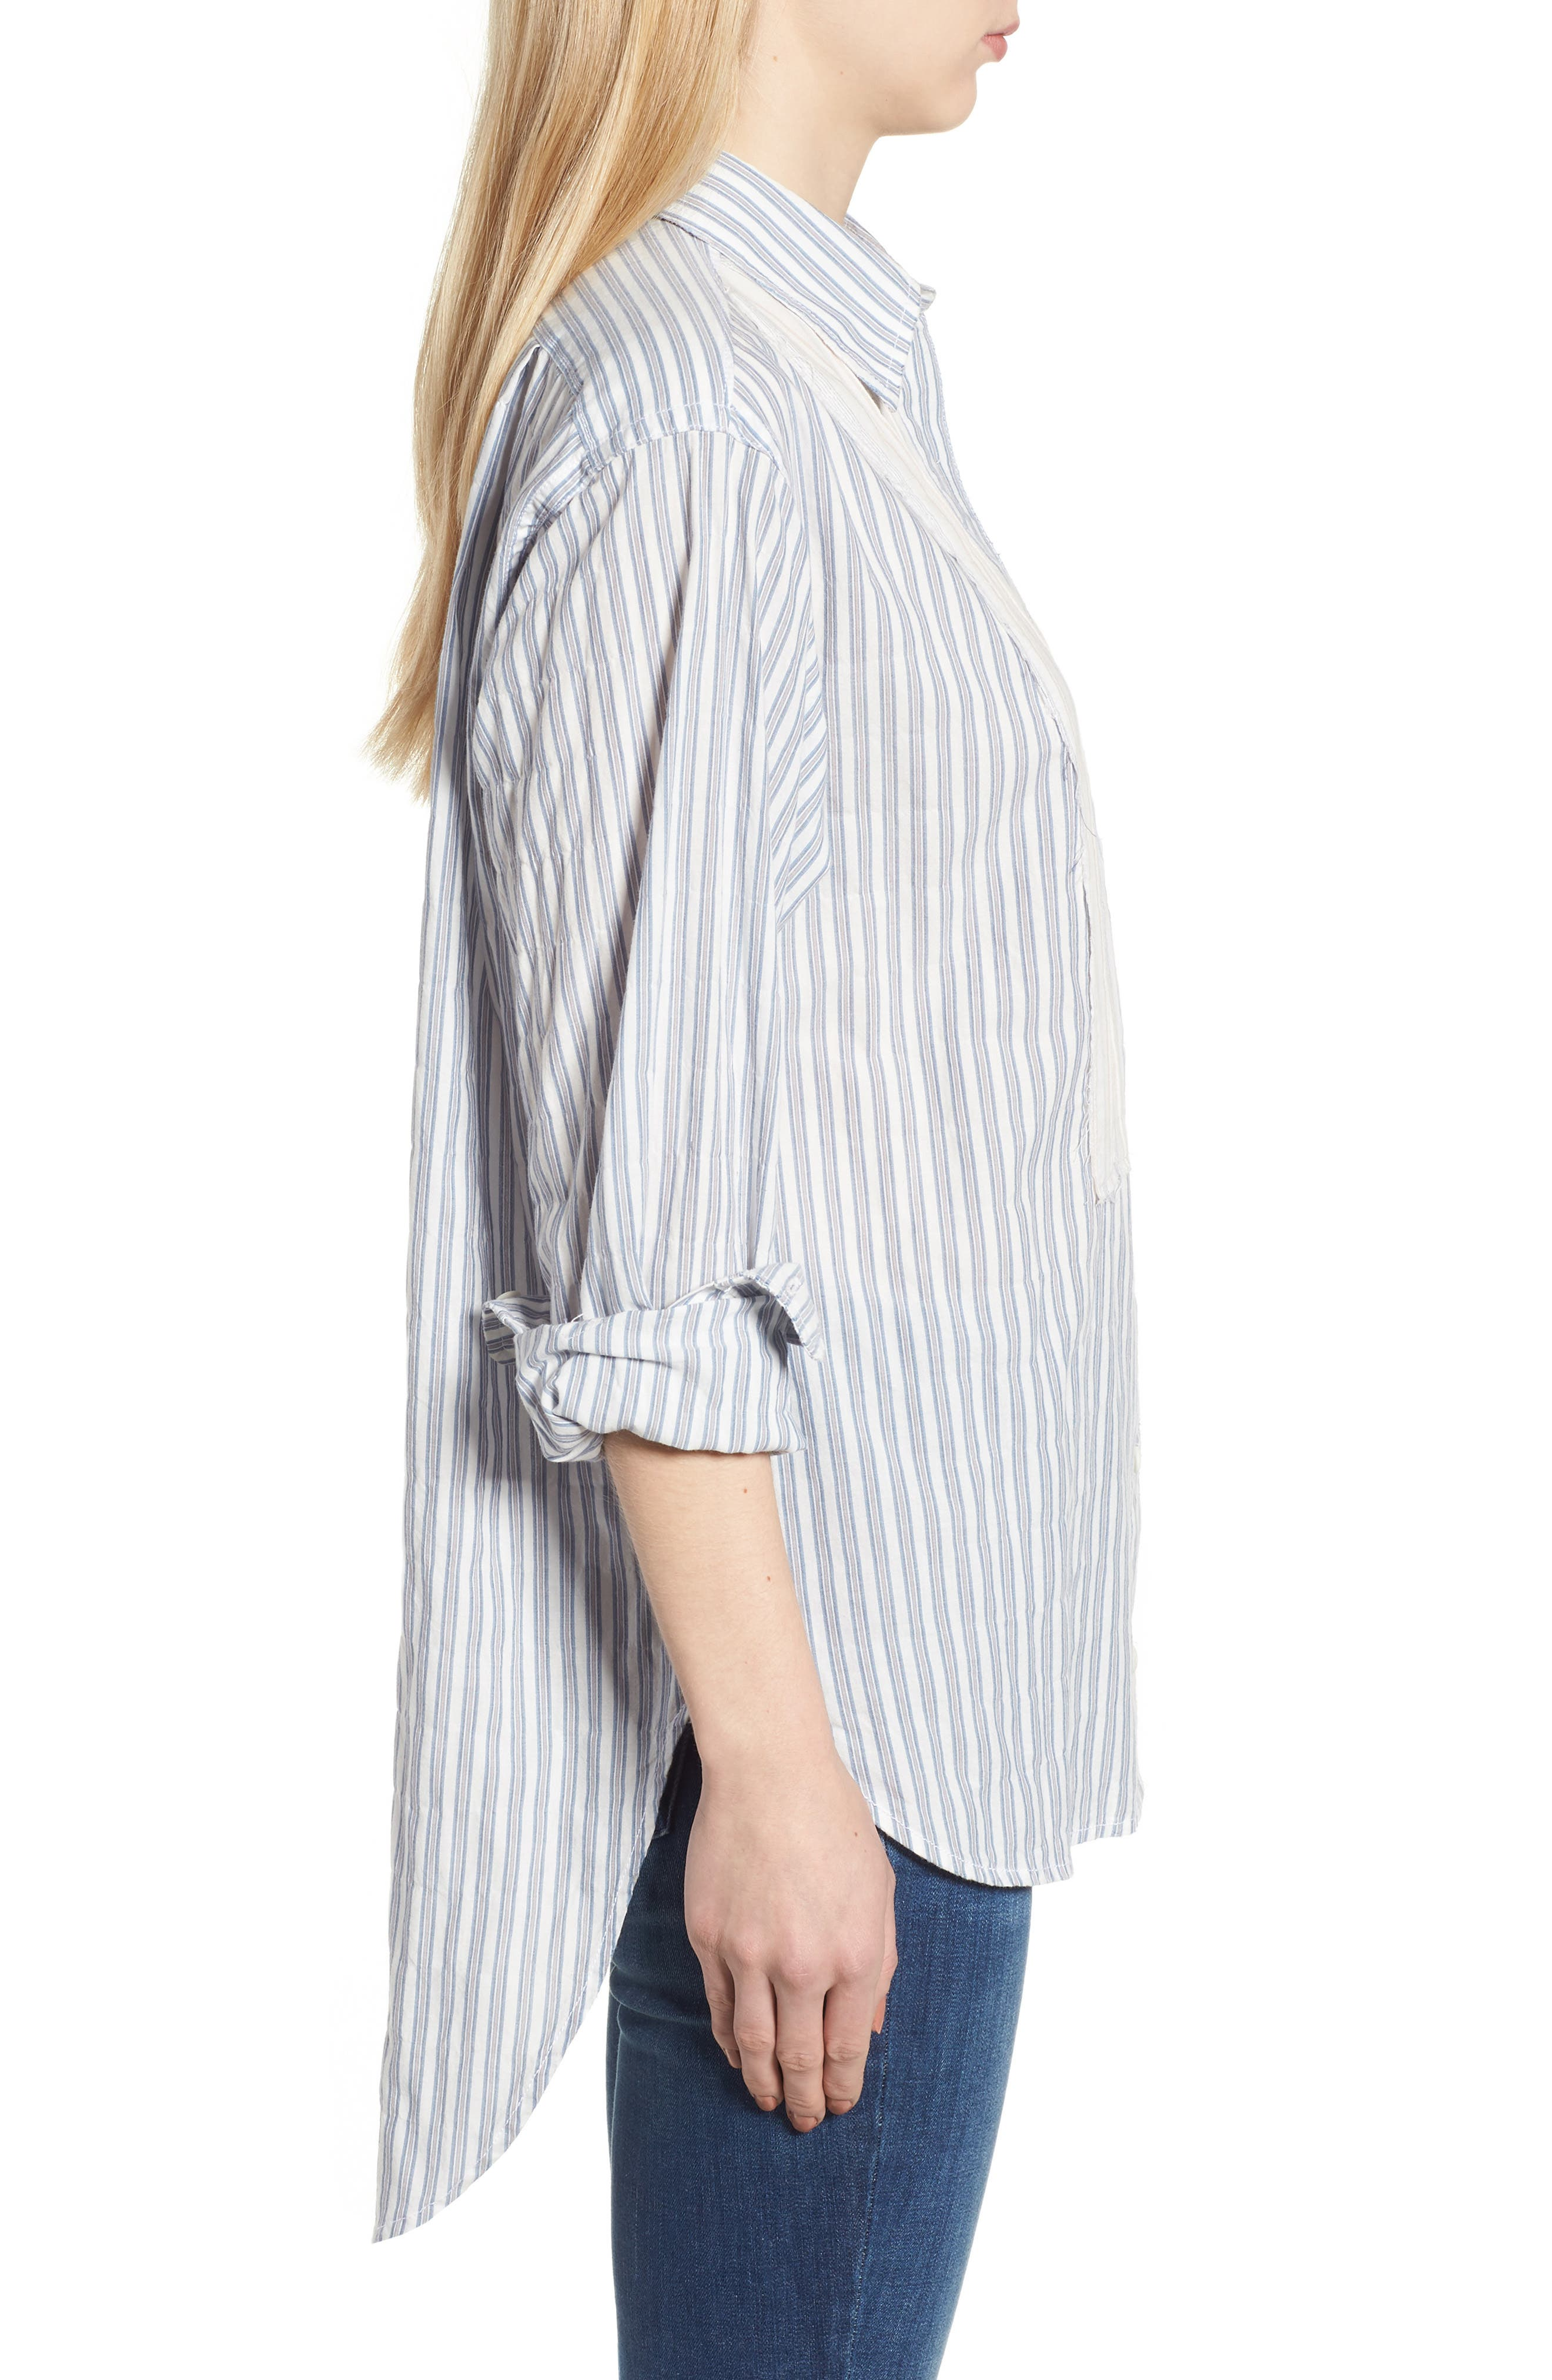 The Rosie Shirt,                             Alternate thumbnail 3, color,                             Multicolor Stripe